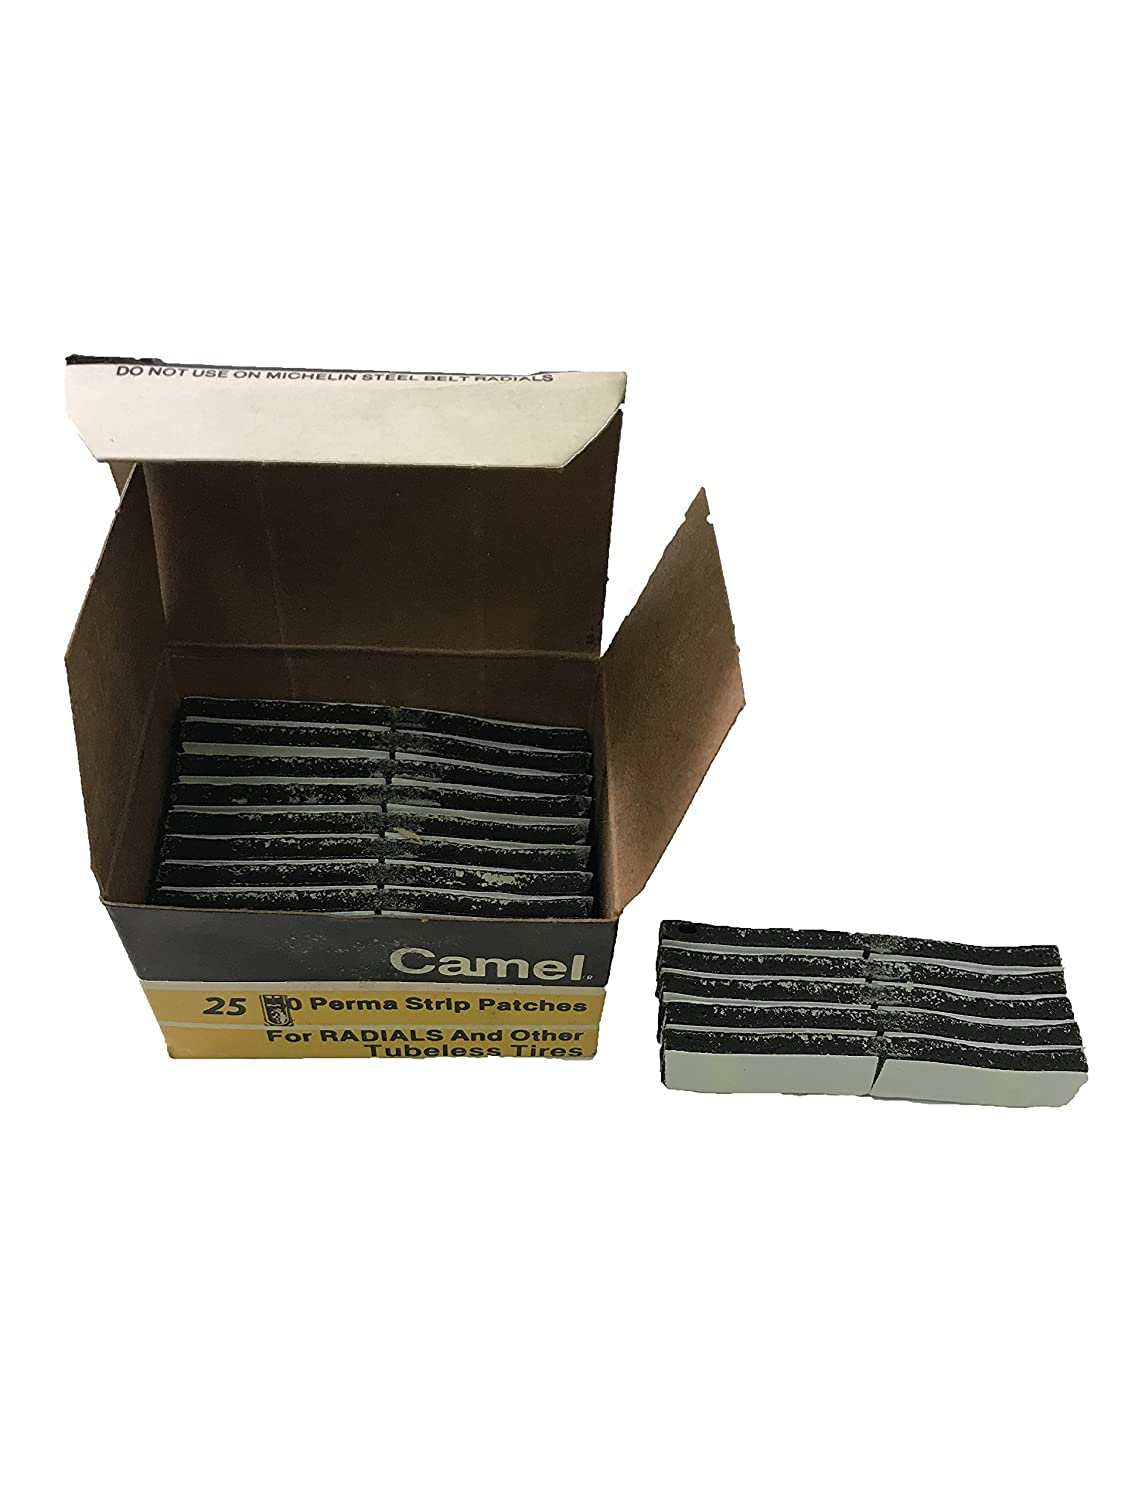 Camel Sherco-Auto 25 Pieces 15-180 Perma Strip Radial Tire Patches 2.5' x 3/8' x 3/16' - USA Made